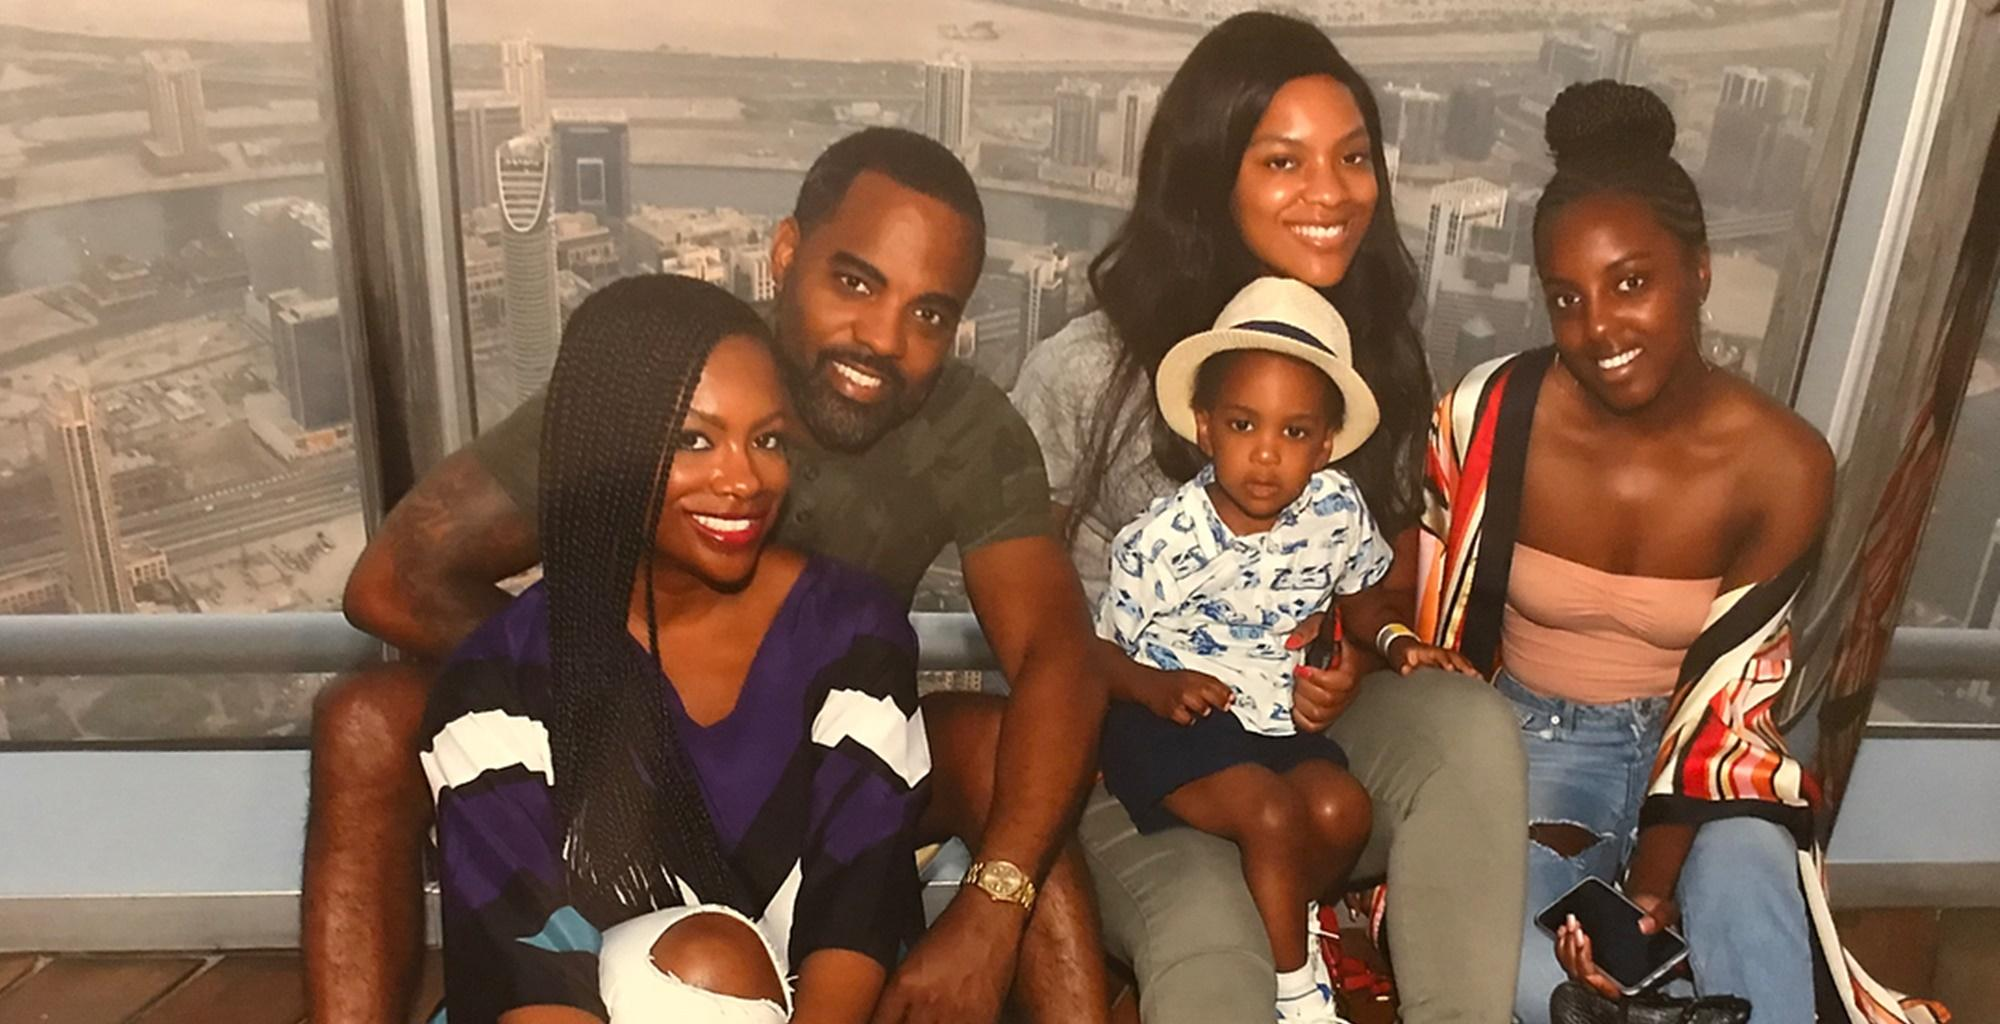 RHOA: Kaela Tucker Addresses Her Relationship With Her Dad Along With Kandi And Riley Burruss